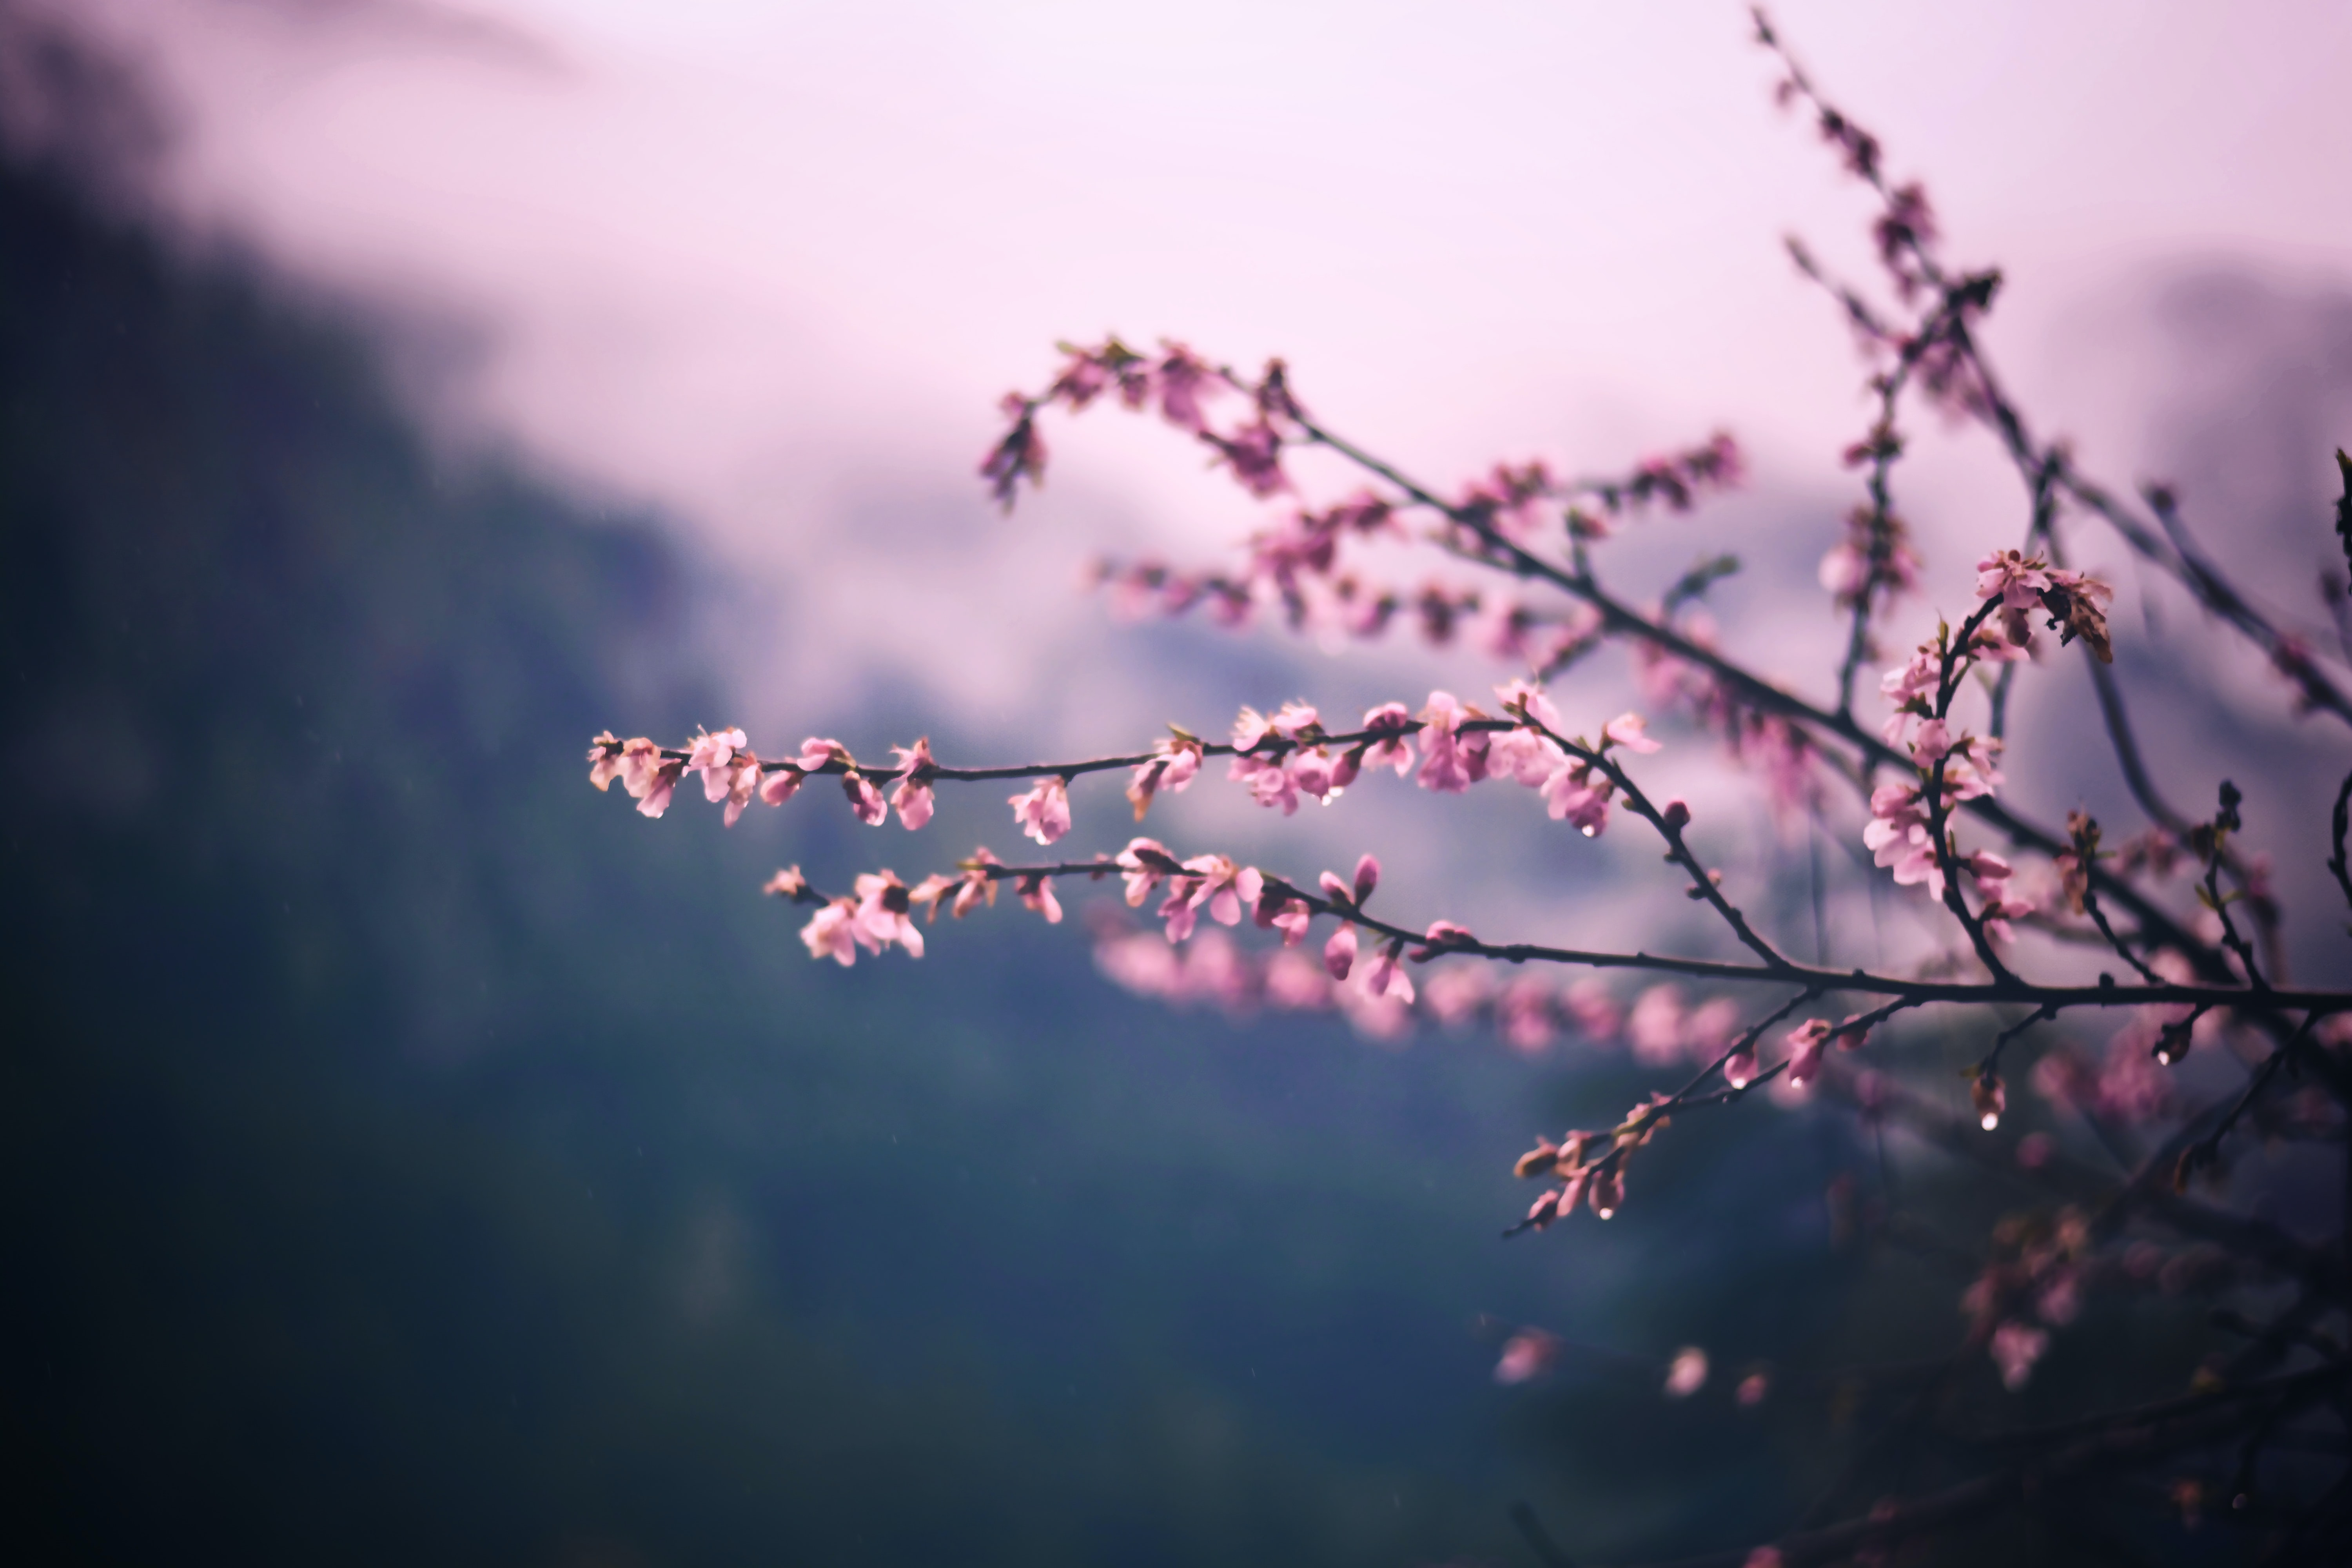 focus photo of pink petaled flowers